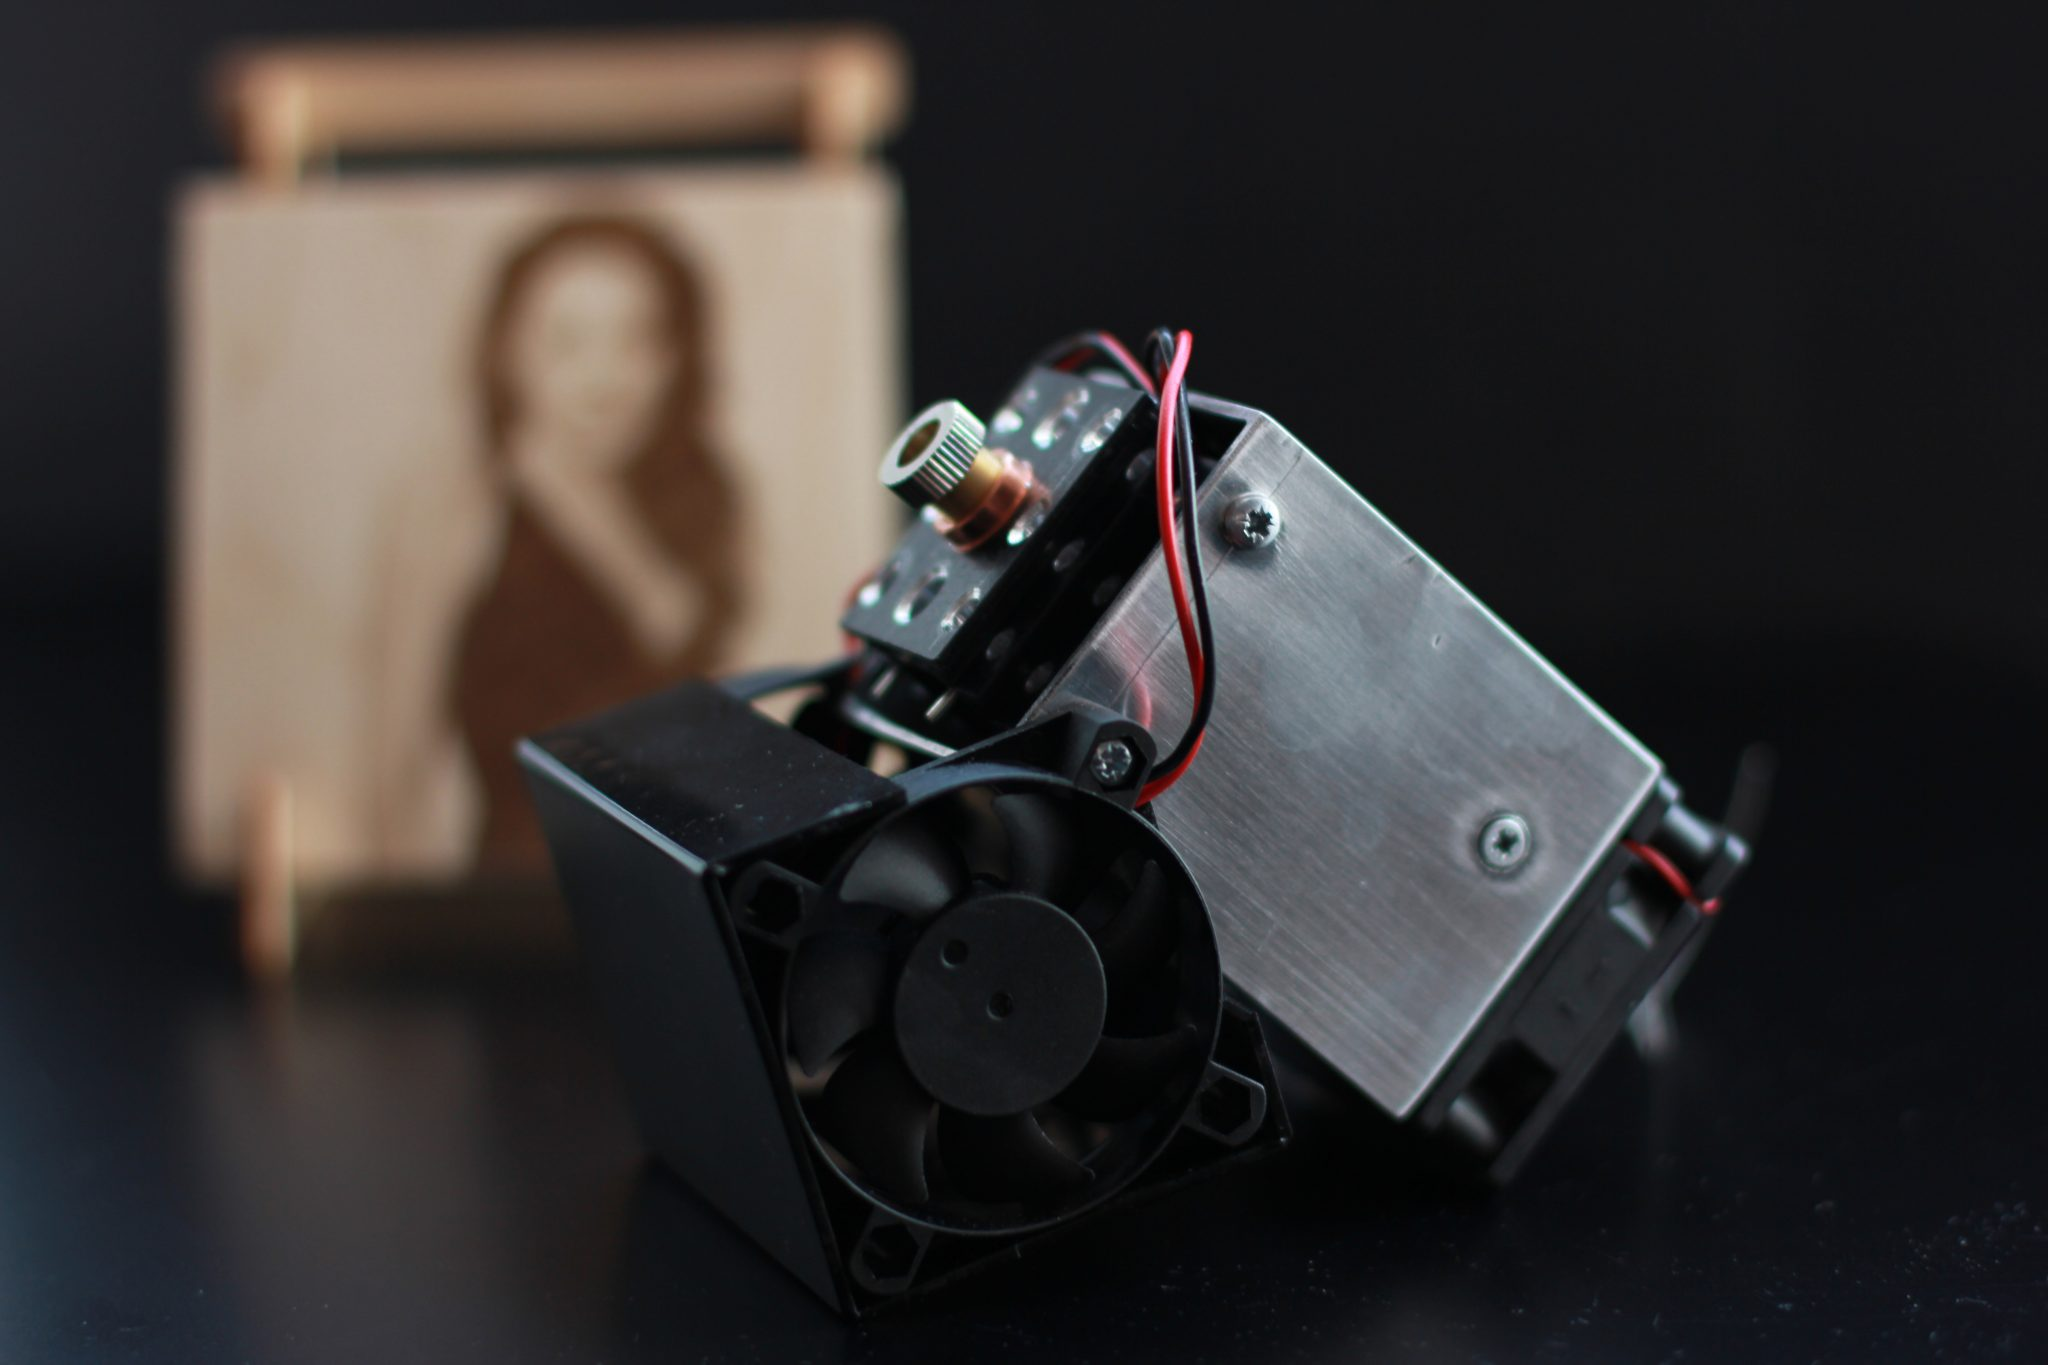 An Endurance 10 Watt Laser Attachment For 3d Printers And Cnc To Make A Printed Circuit Board Using Diode With Printer Machines Printing Industry